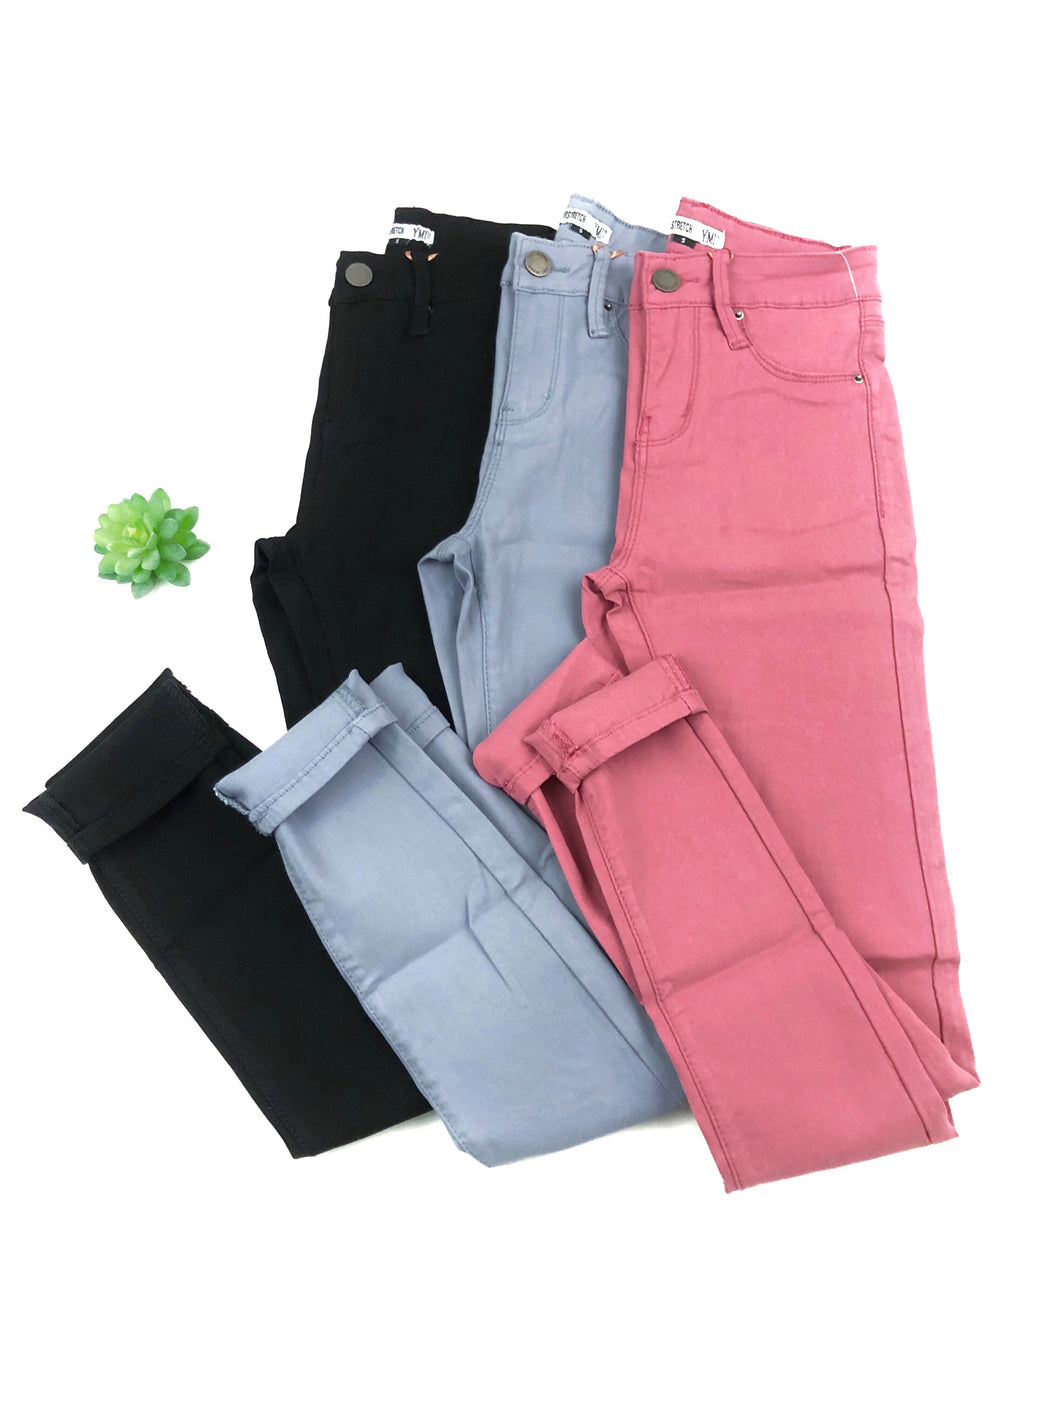 Hyperstretch Skinny Jeggings- Pink, Blue, or Black